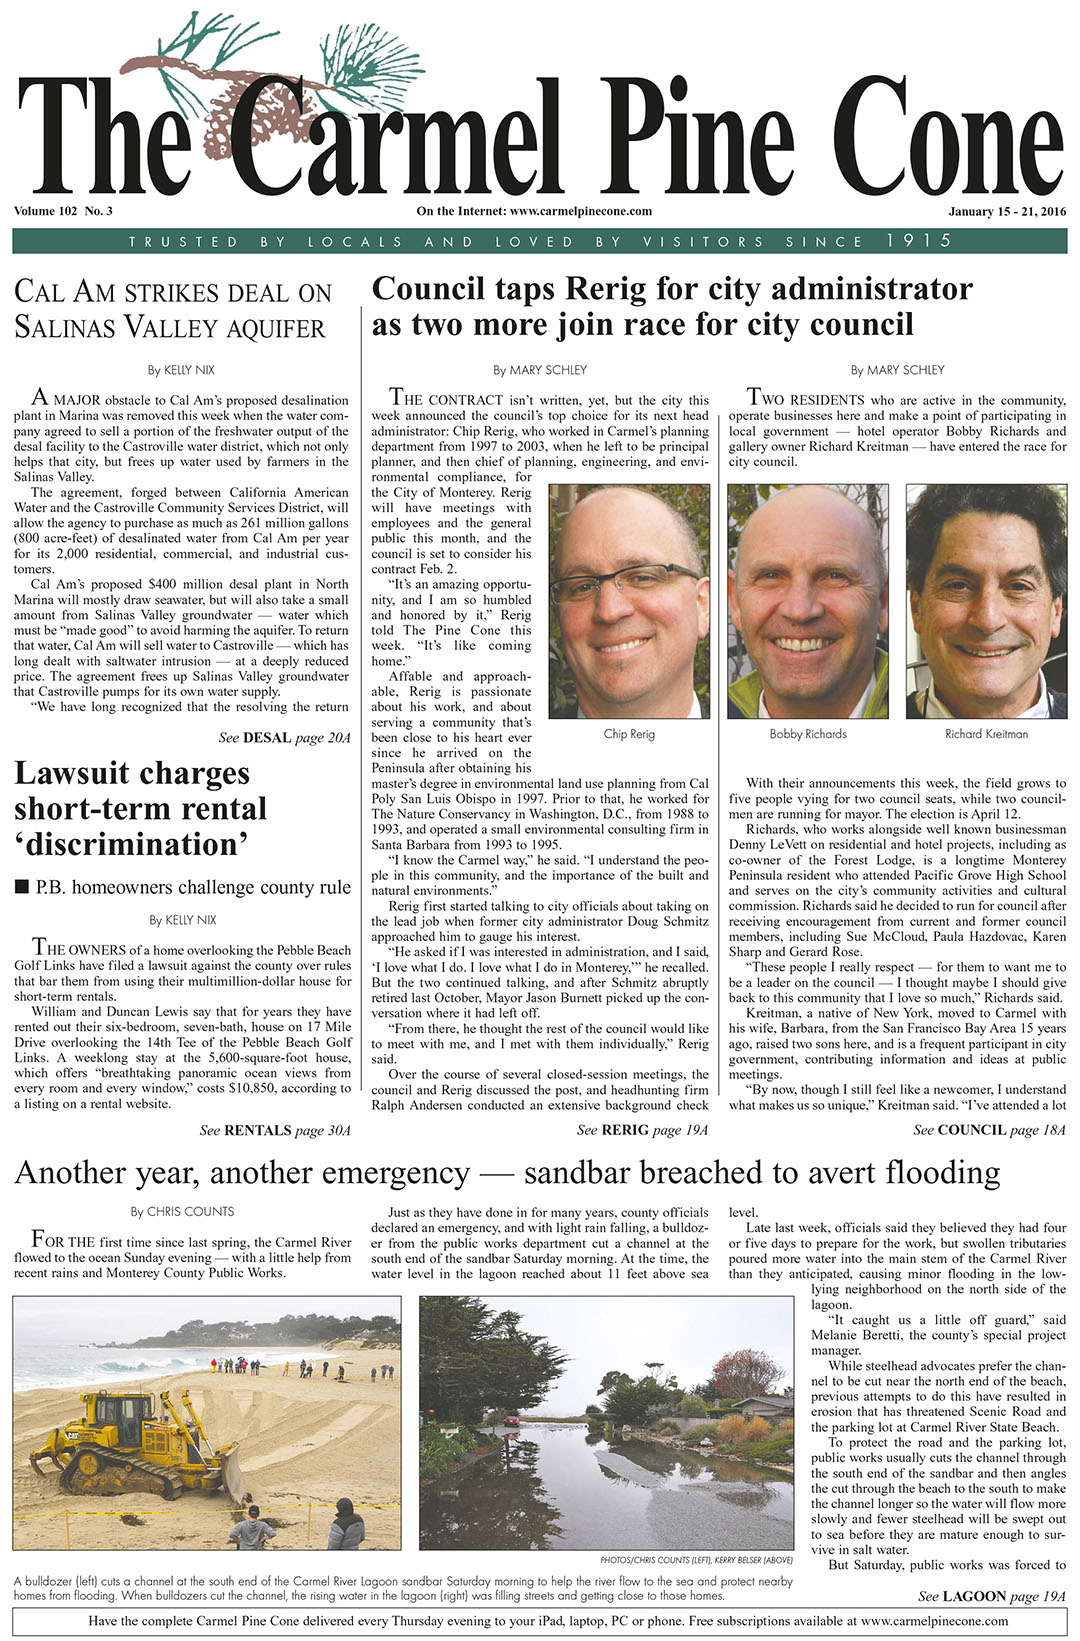 The January 15, 2016, front page of The Carmel Pine                 Cone